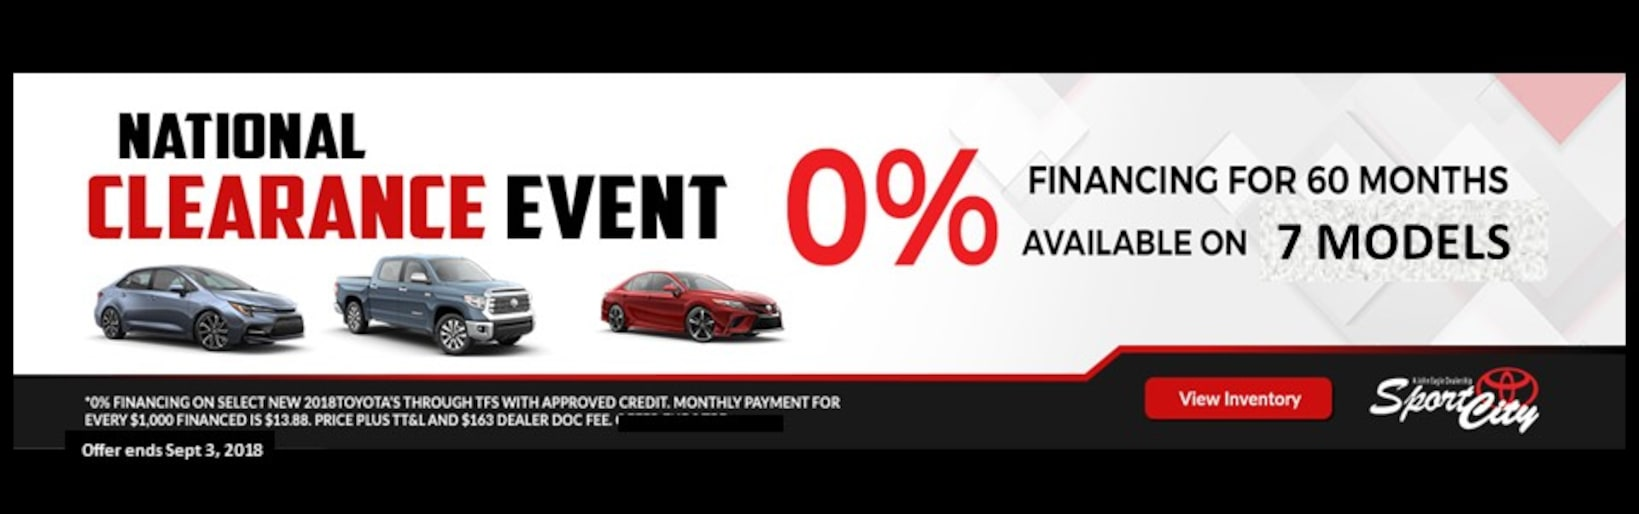 Toyota Dealerships Dfw >> New Used Toyota Dealer Sport City Toyota In Dallas Tx Serving